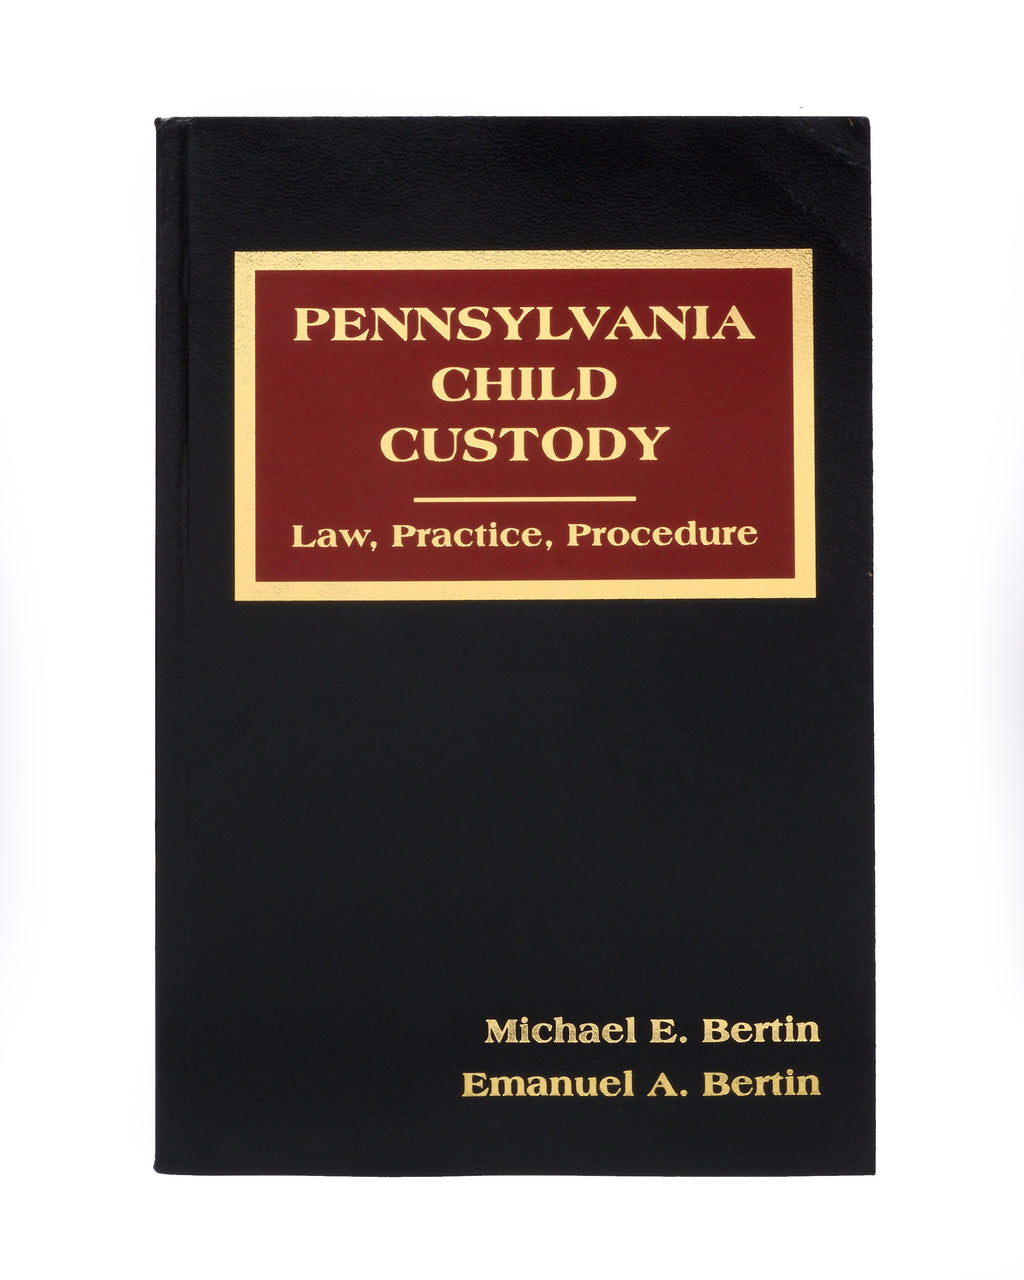 Pennsylvania Child Custody-Law, Practice & Procedure (includes book + digital download)